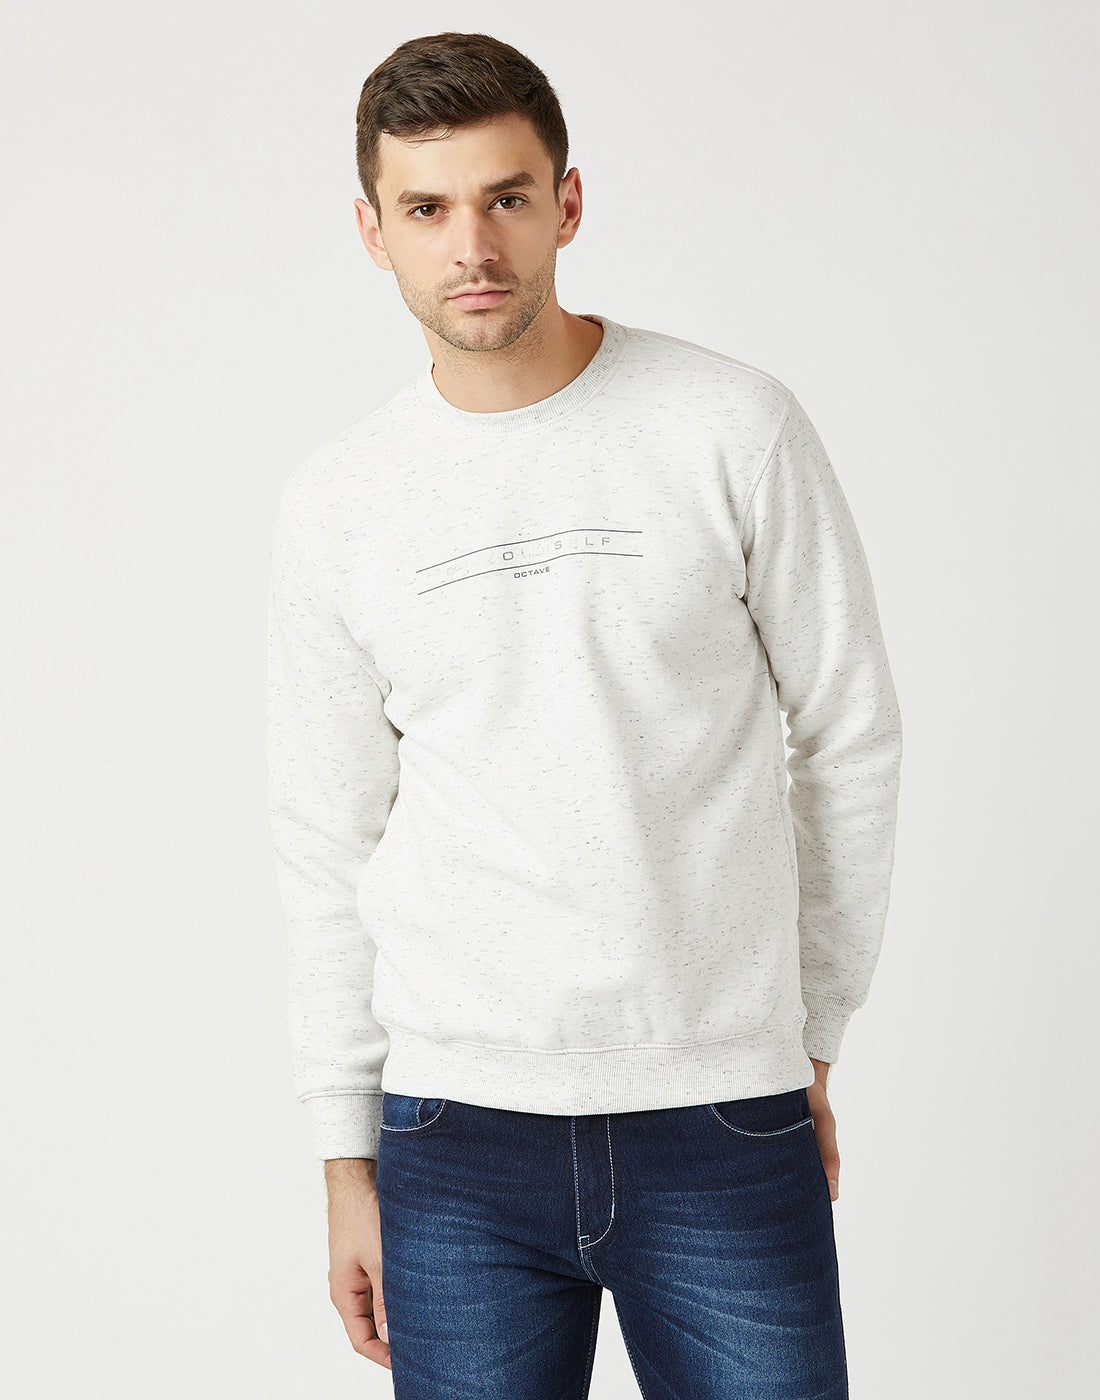 Octave Men White Melange Printed Sweatshirt